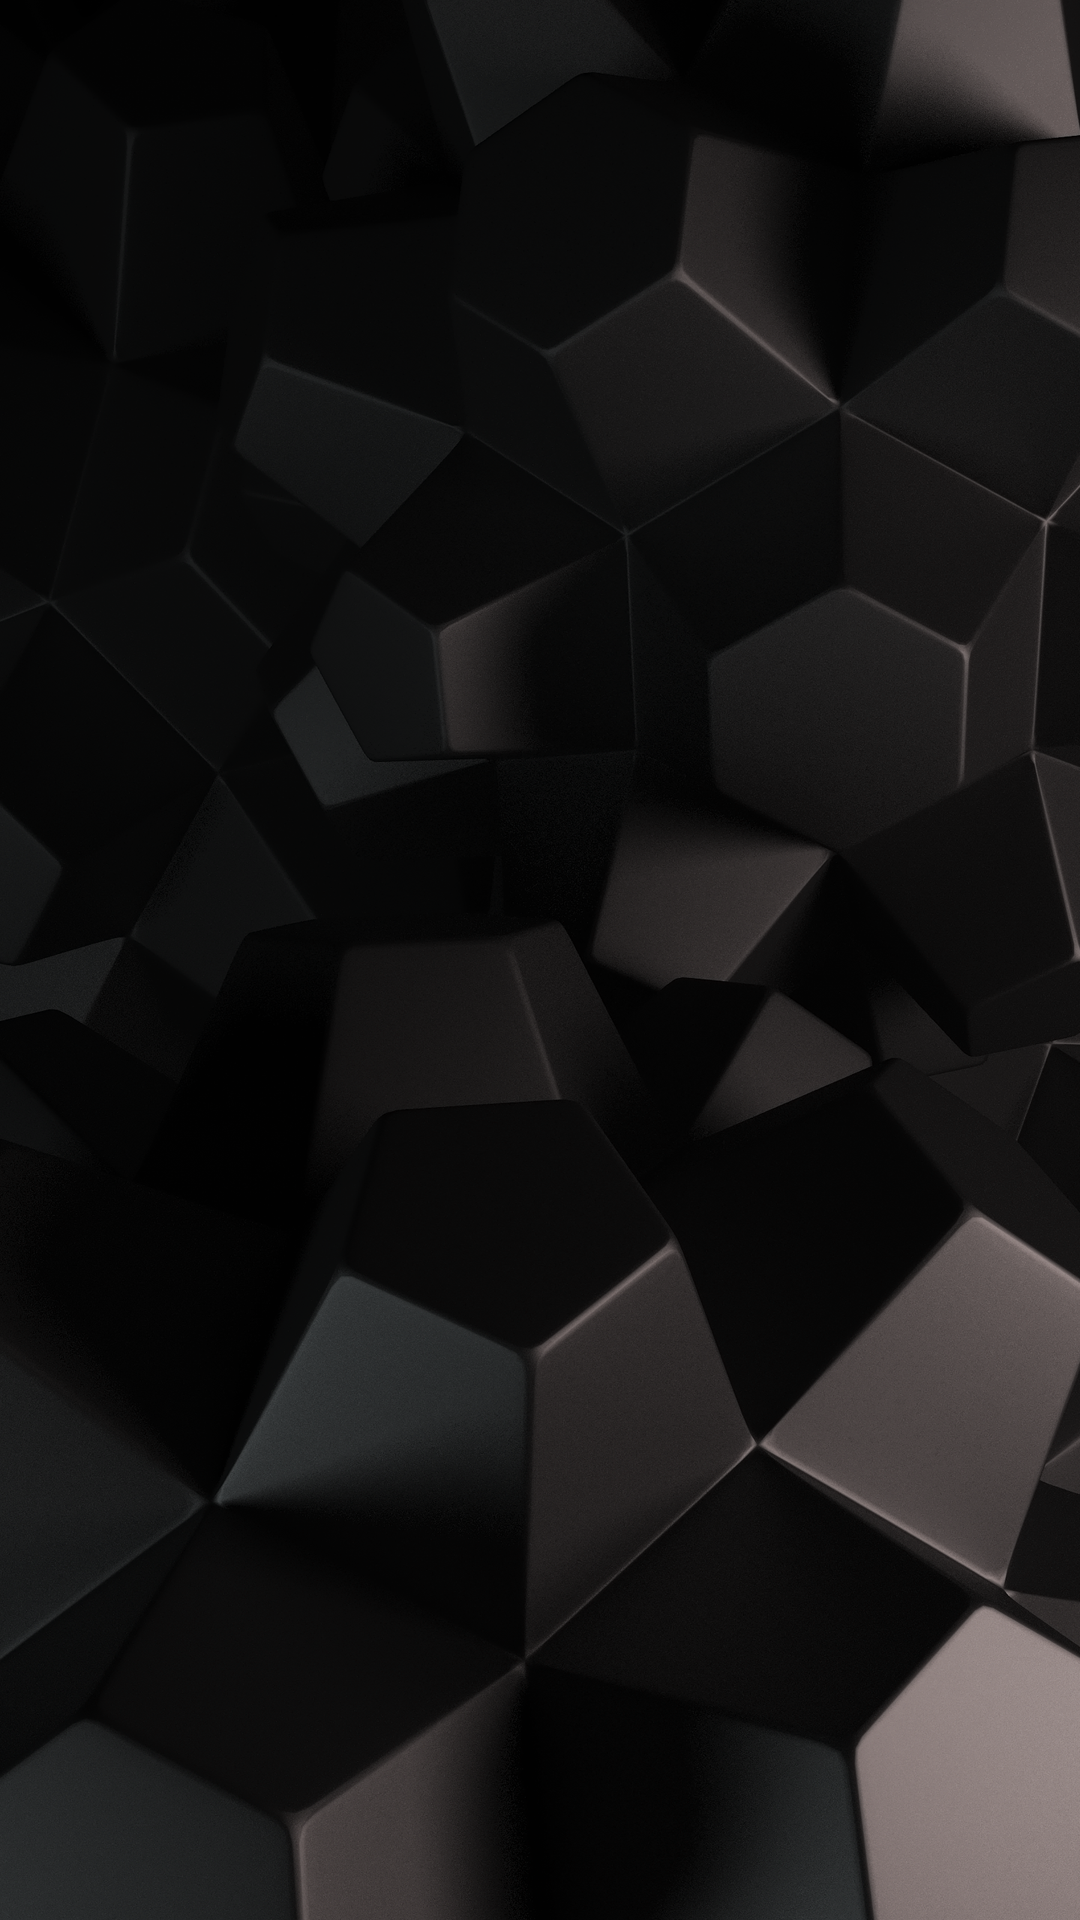 Black abstract htc one wallpaper